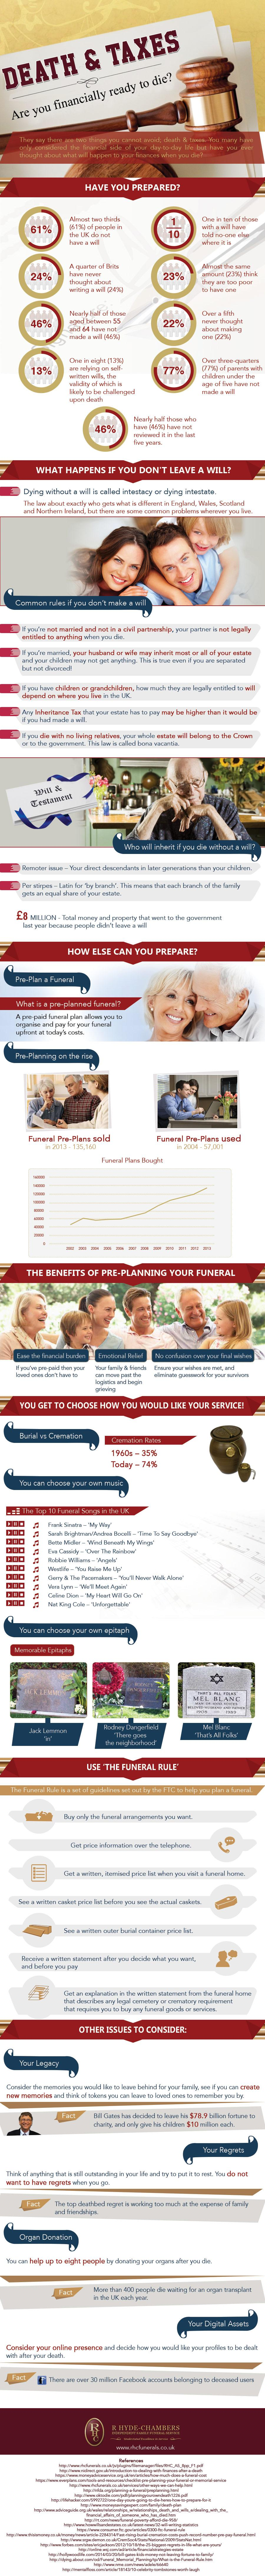 Death & Taxes – Are You Financially Ready to Die?